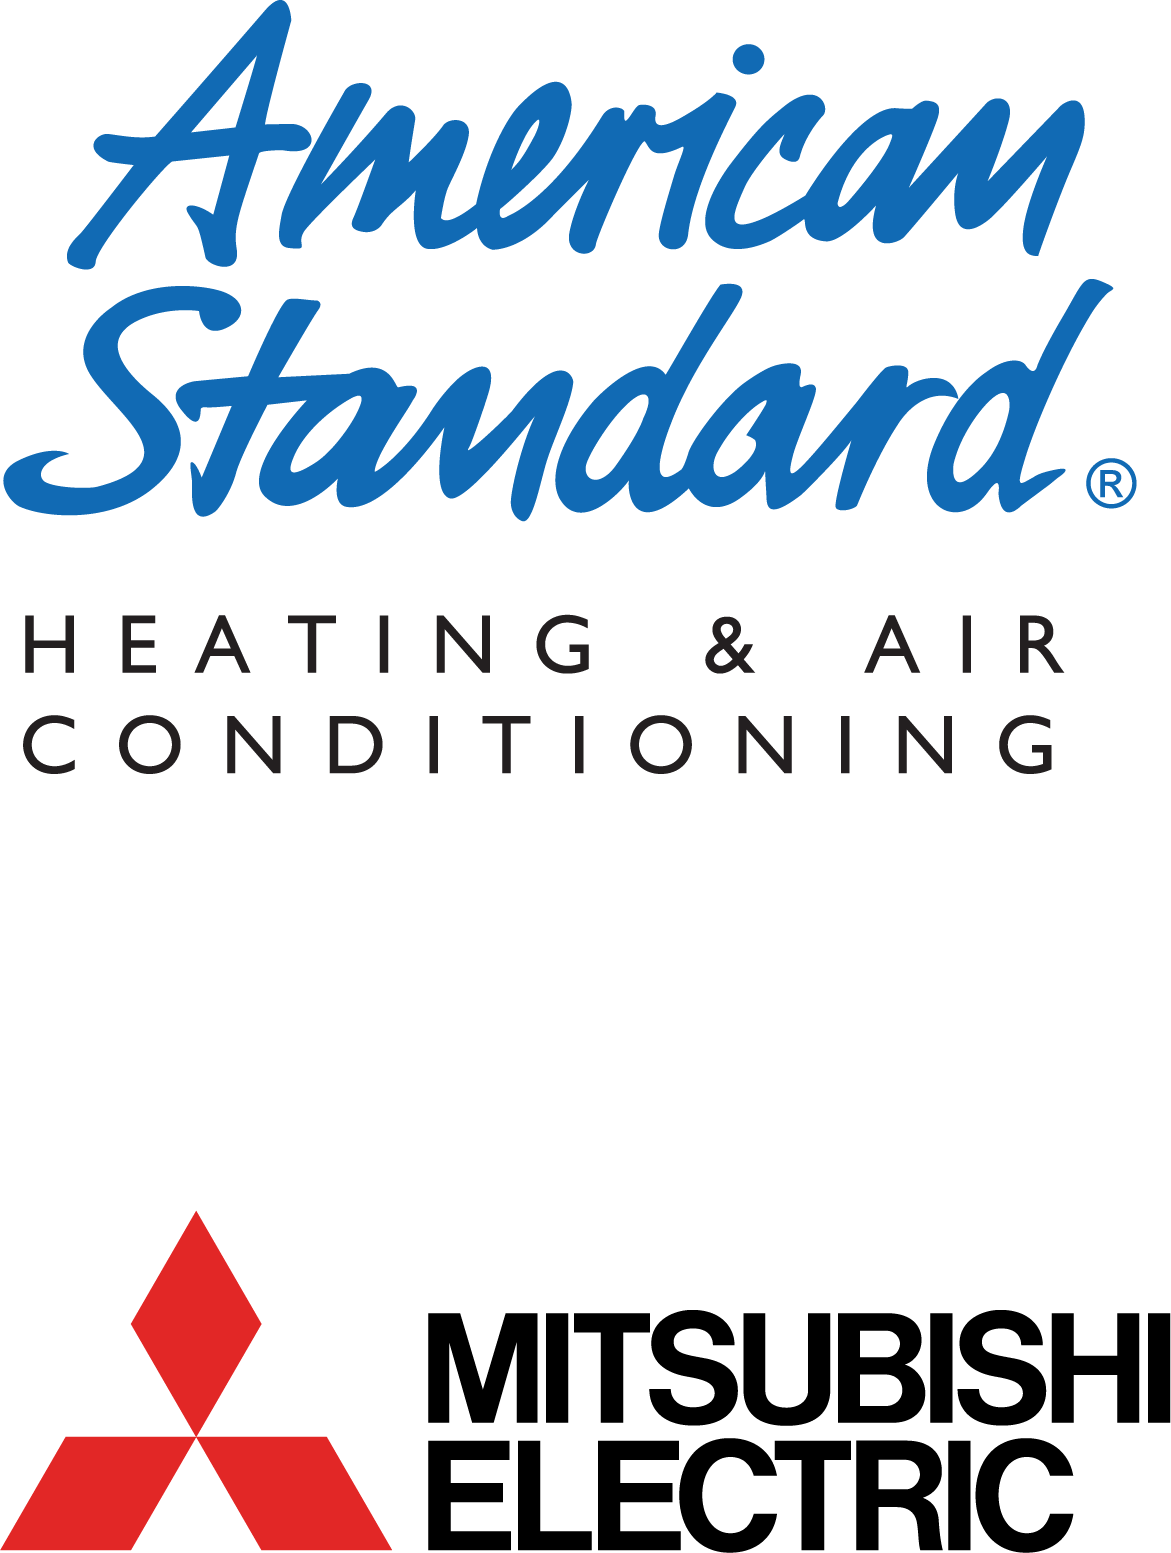 Pleasing Mitsubishi Ductless Cooling Heating Air Quality Smart Themostat Wiring Cloud Ostrrenstrafr09Org